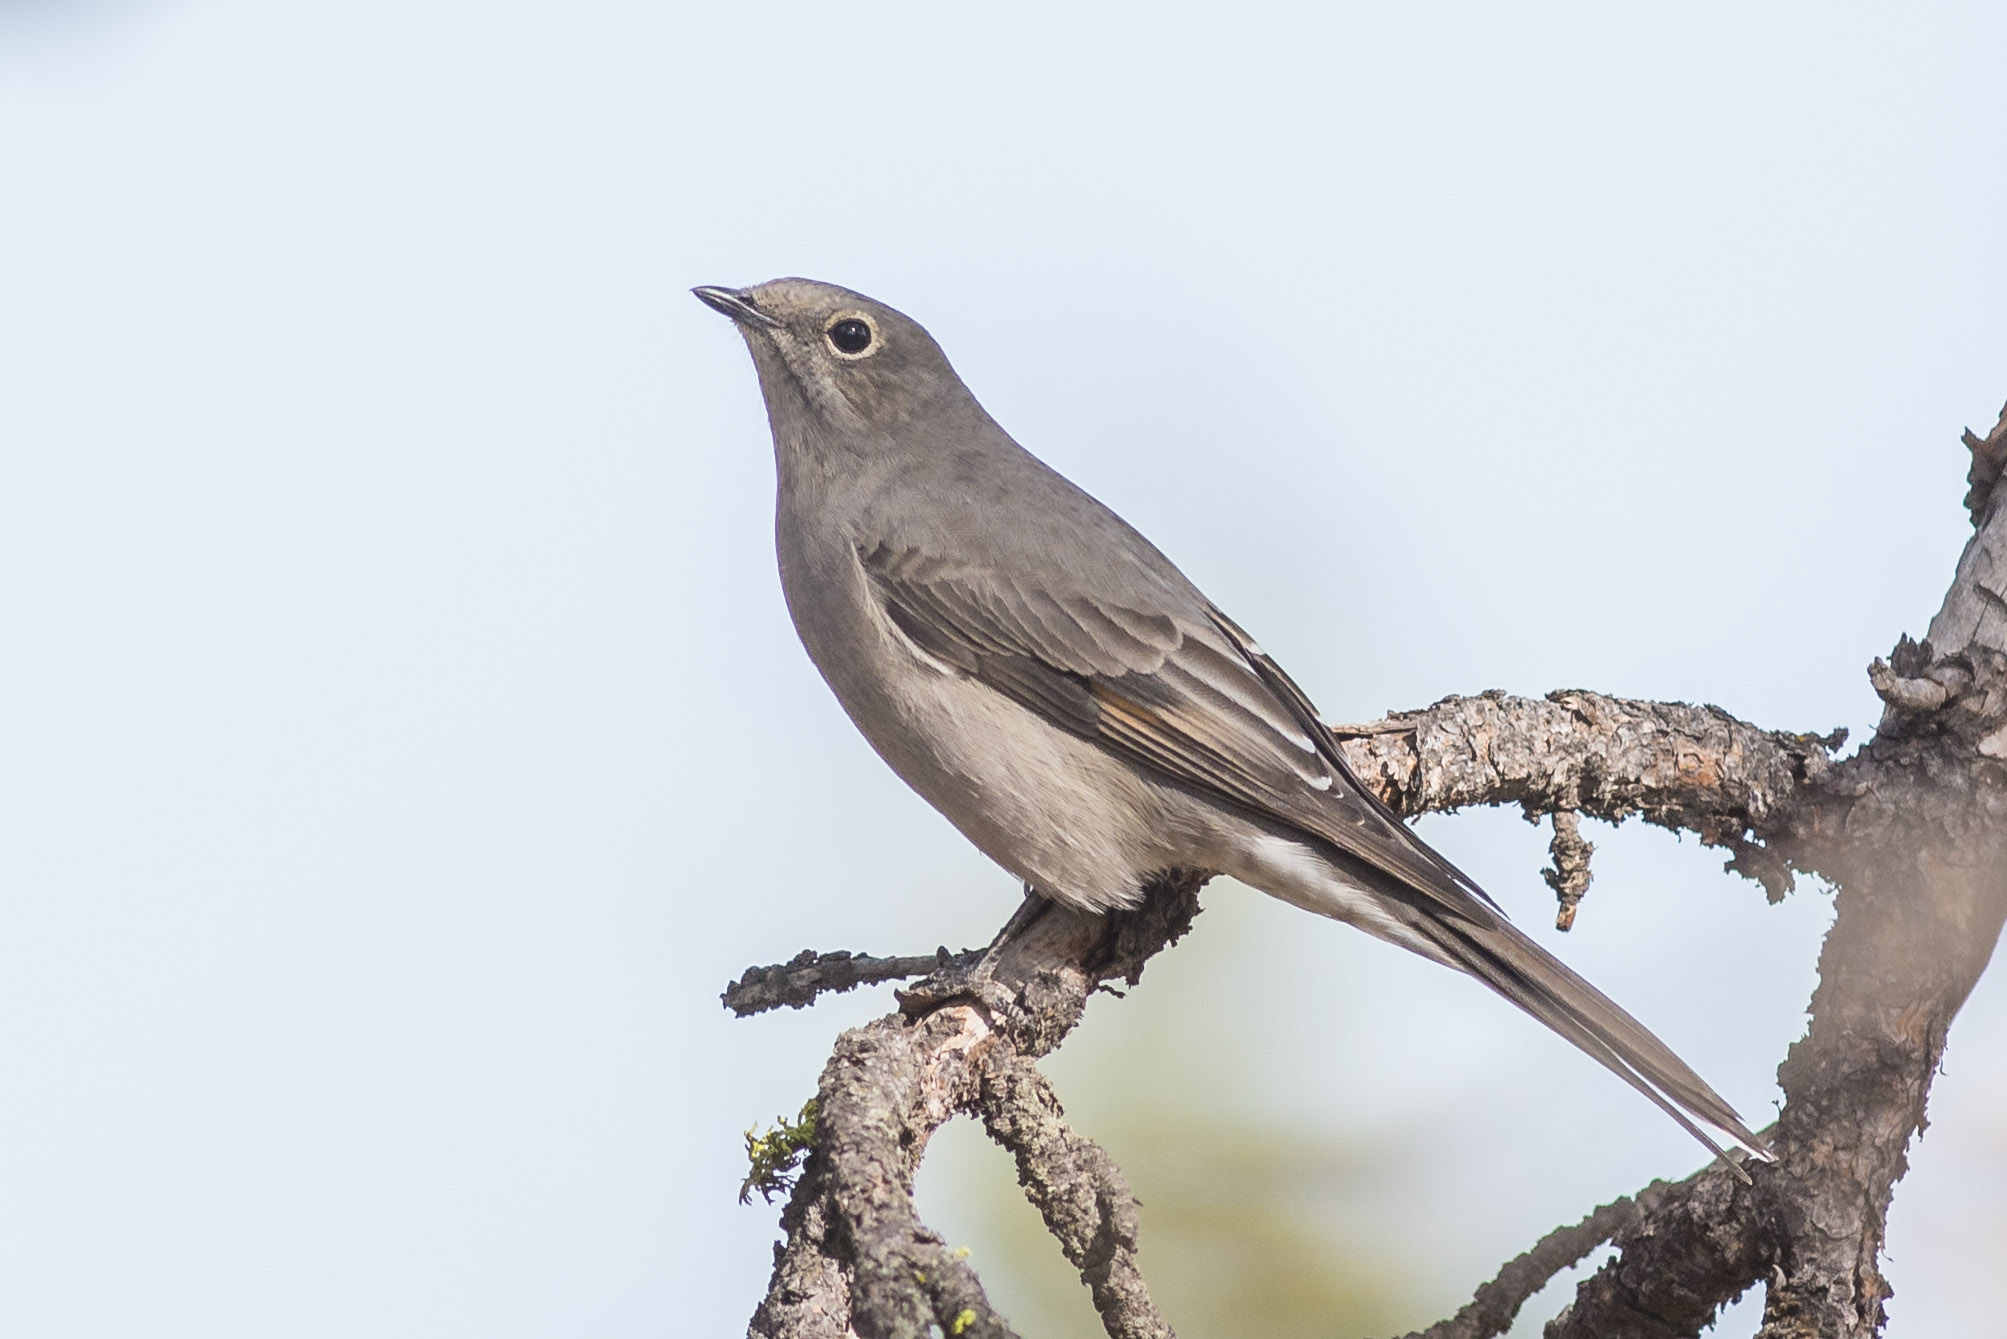 Townsend's Solitaire (Myadestes townsendi) - Sawyer Park, Deschutes Co. (OR)  EQ: D7200, 300mm f/2.8  Taken: 9-30-2016 at 10:37   Settings: 450 mm (35mm eqiv), 1/1250s, f/4.5, ISO250, +1/3EV  Conditions: Shady/Sunny